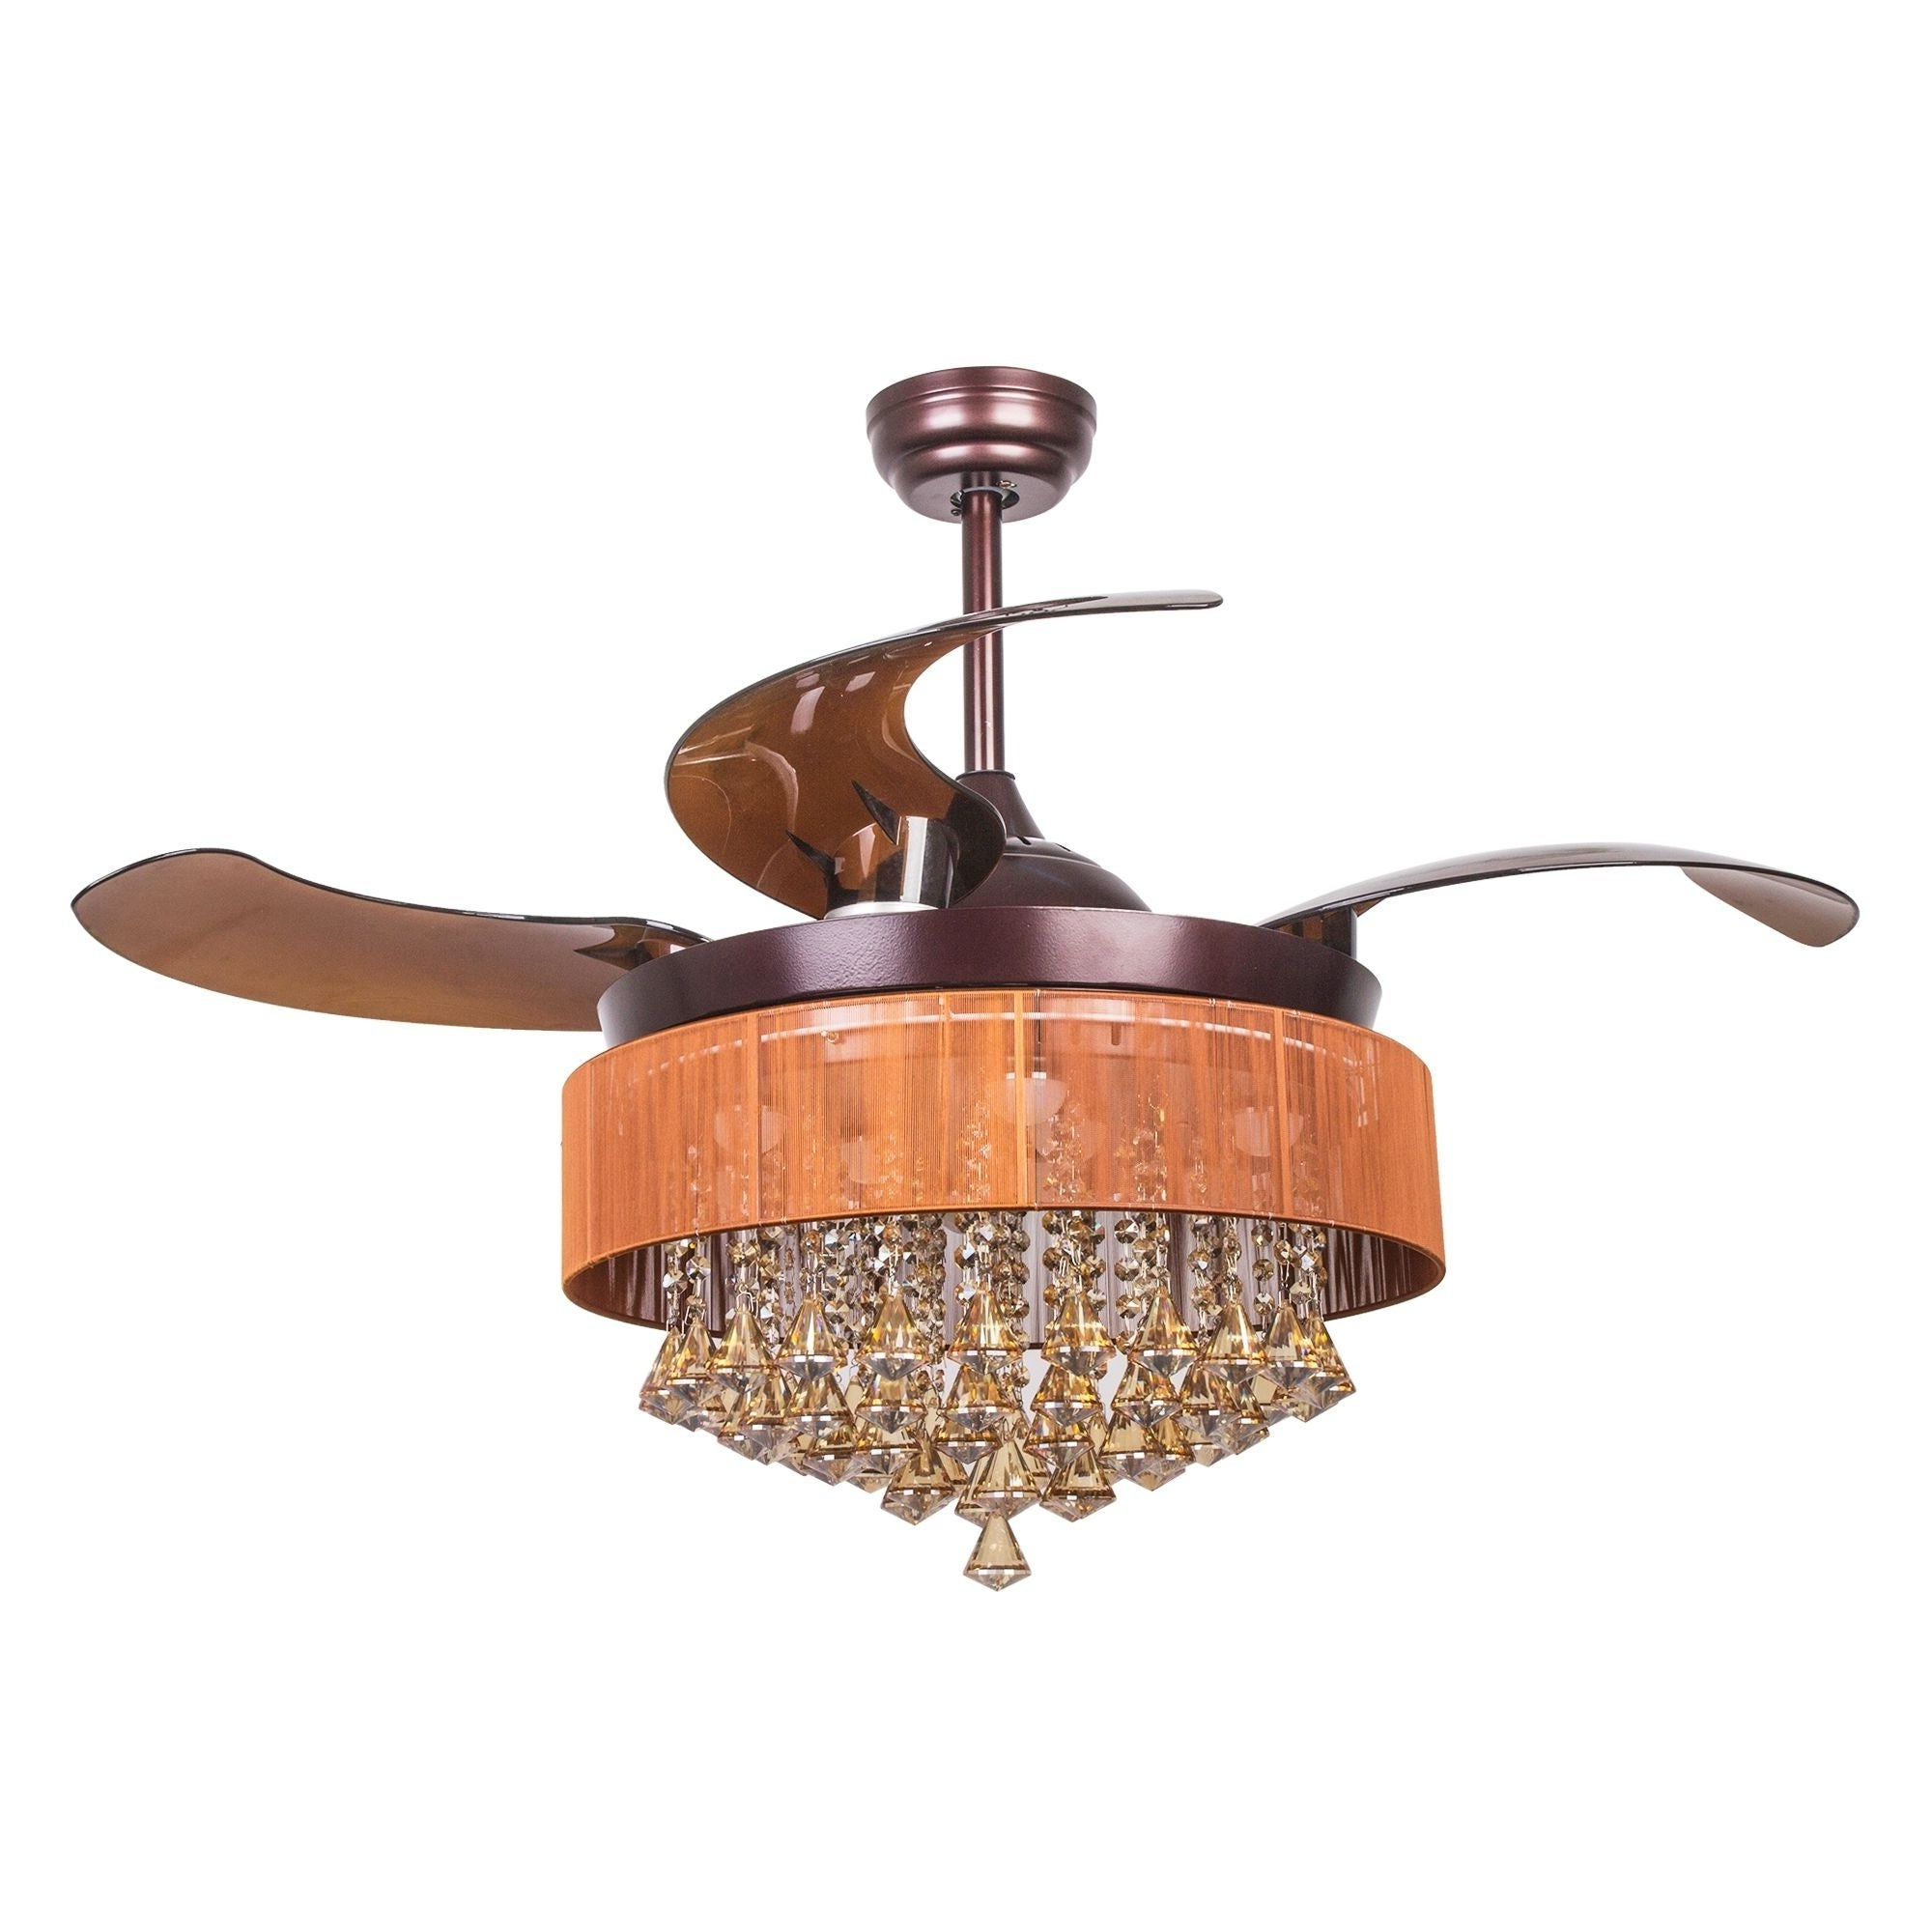 Trendy Napoli 5 Blade Led Ceiling Fans Regarding Modern Crystal Led Ceiling Fan With Foldable Blades, Oil Rubbed Bronze (View 17 of 20)